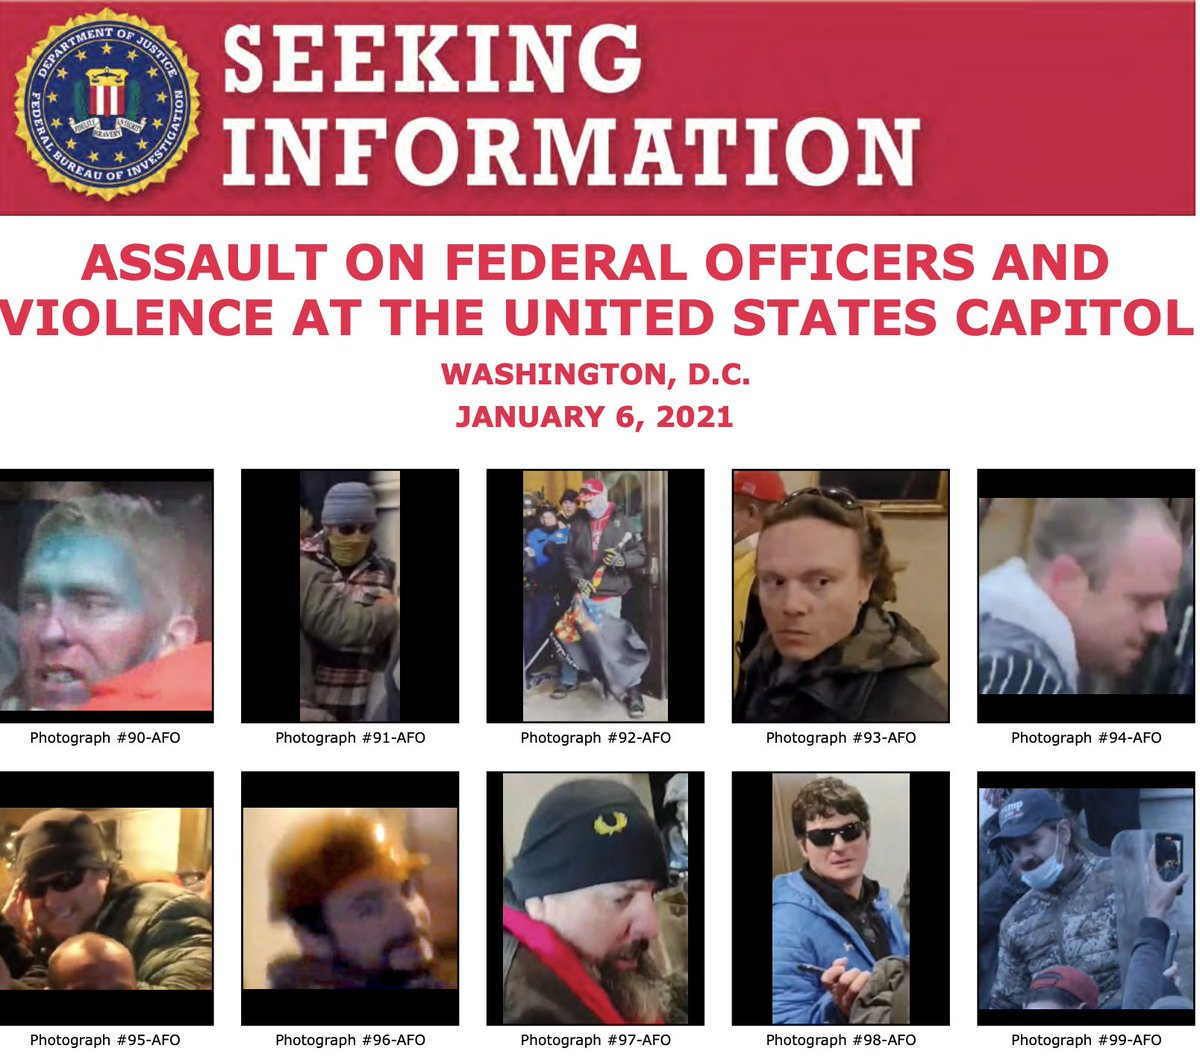 We posted new photos of individuals who unlawfully entered the U.S. Capitol and assaulted federal officers last week. The #FBI needs your help to identify them. Take a look at . If you see someone you know, submit a tip at . @FBIWFO